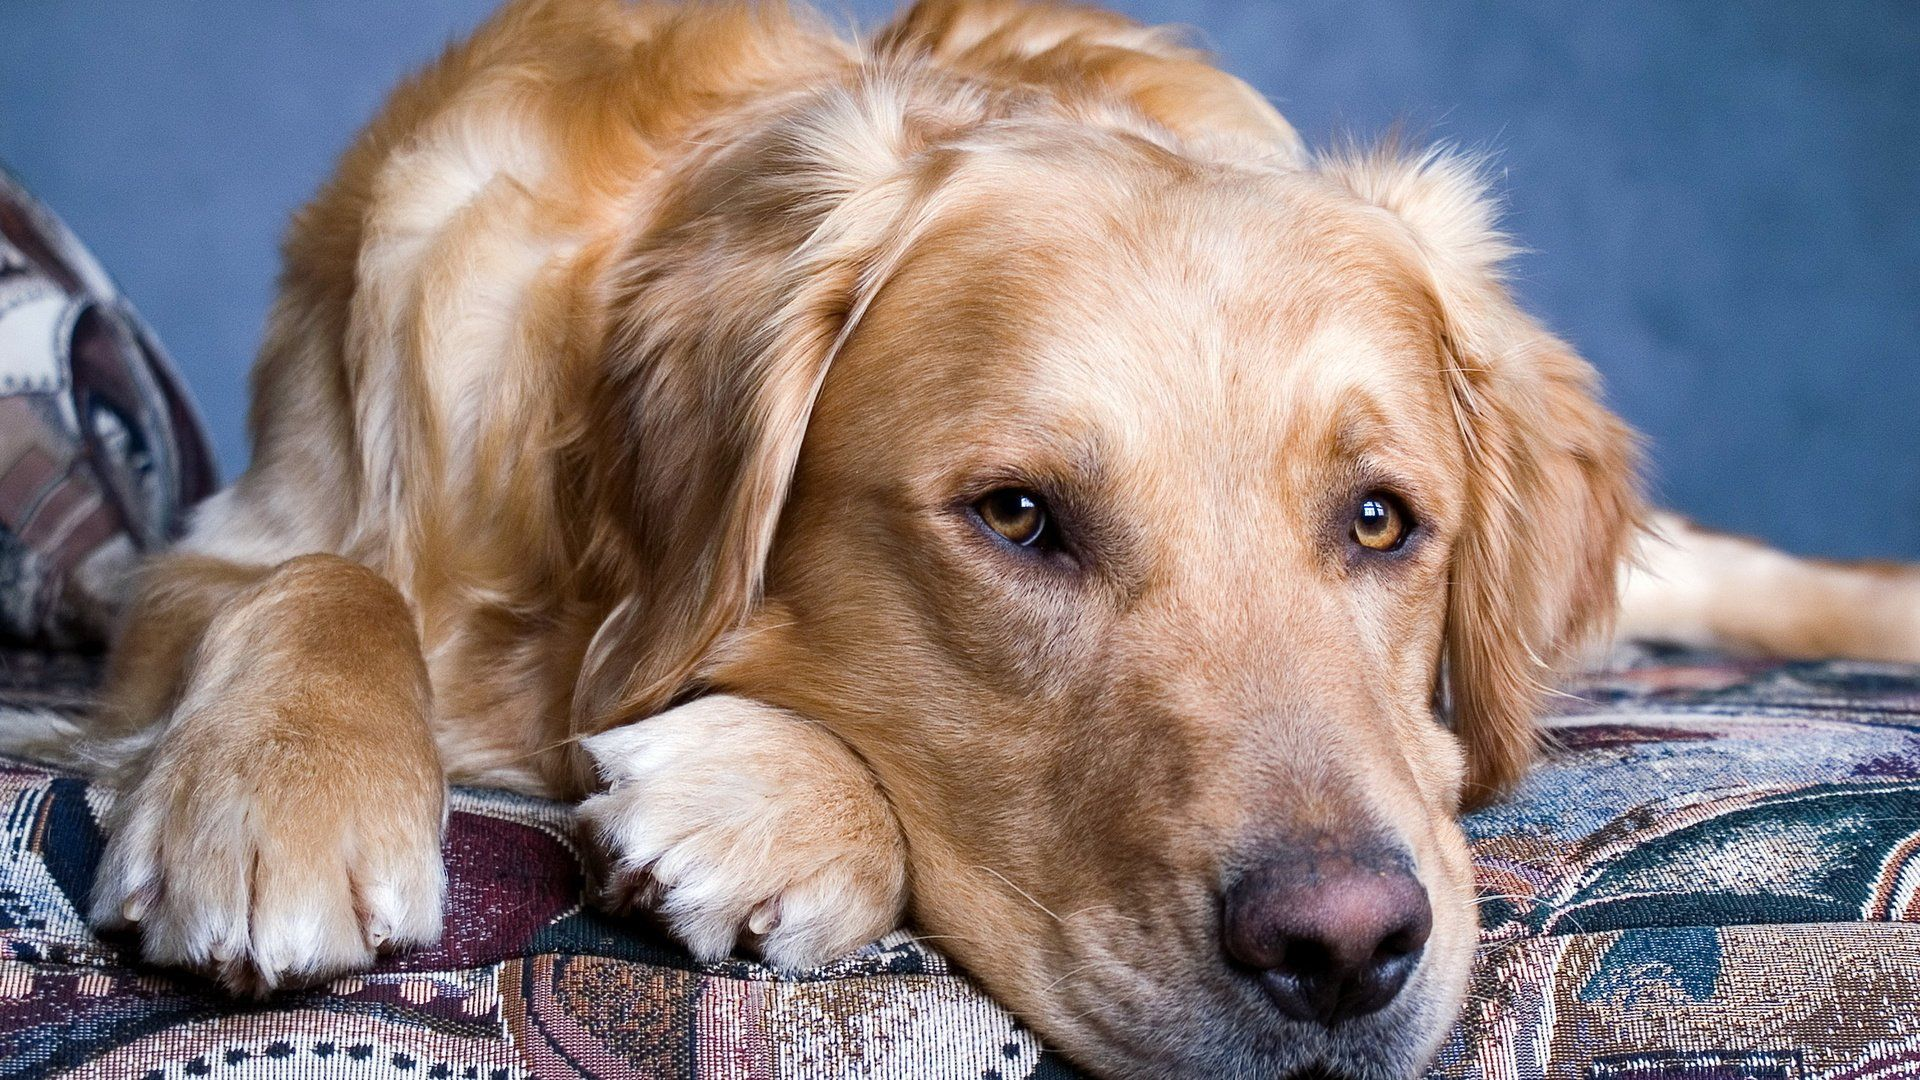 Golden Retriever Collar download free wallpaper image search